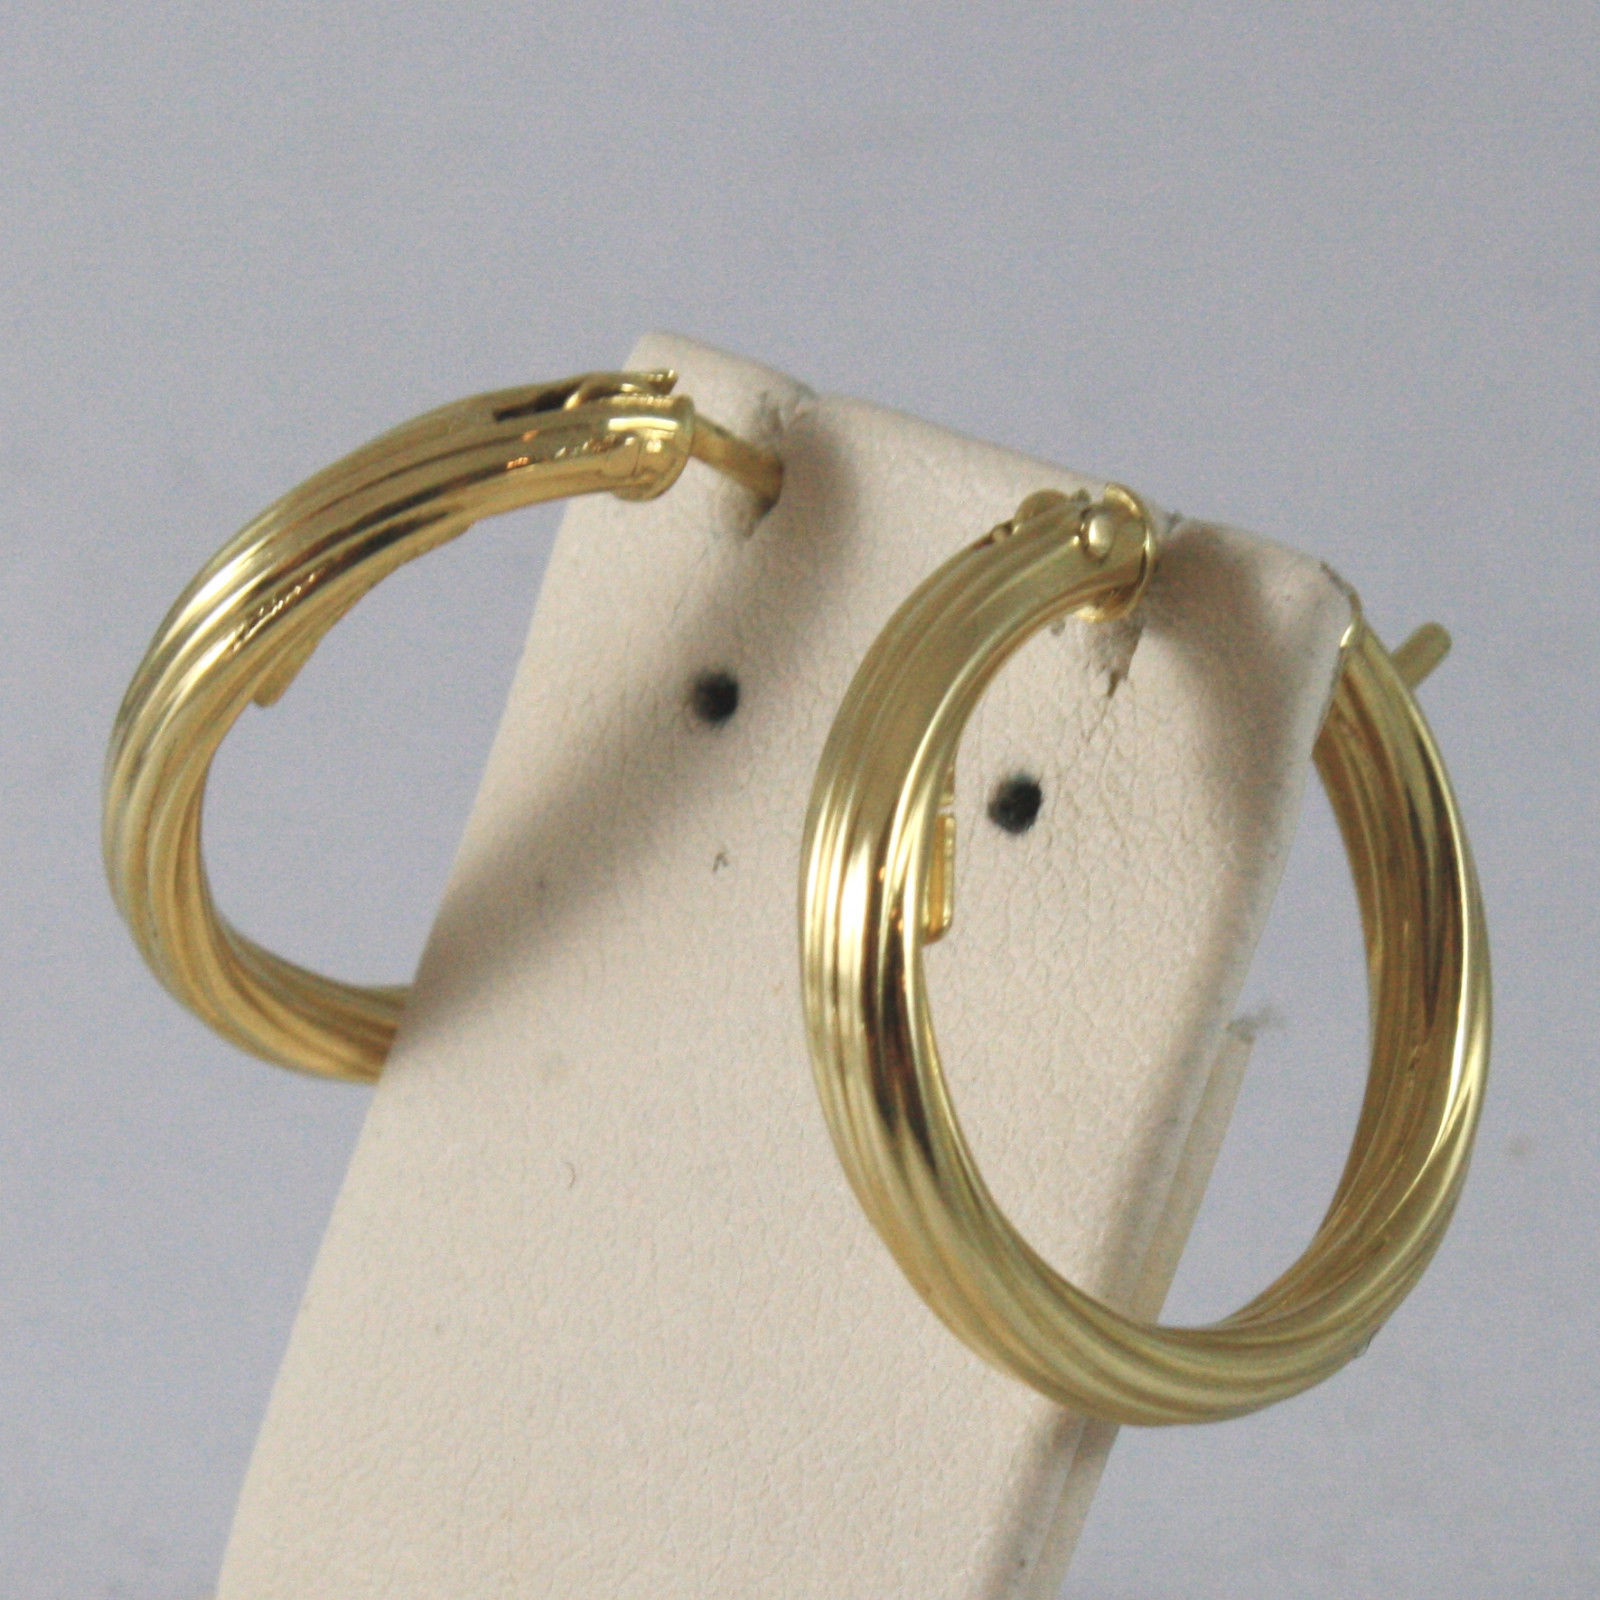 SOLID 18KT. YELLOW GOLD CIRCLE EARRINGS,STRIPED, DIAMETER 0,87 IN MADE IN ITALY.